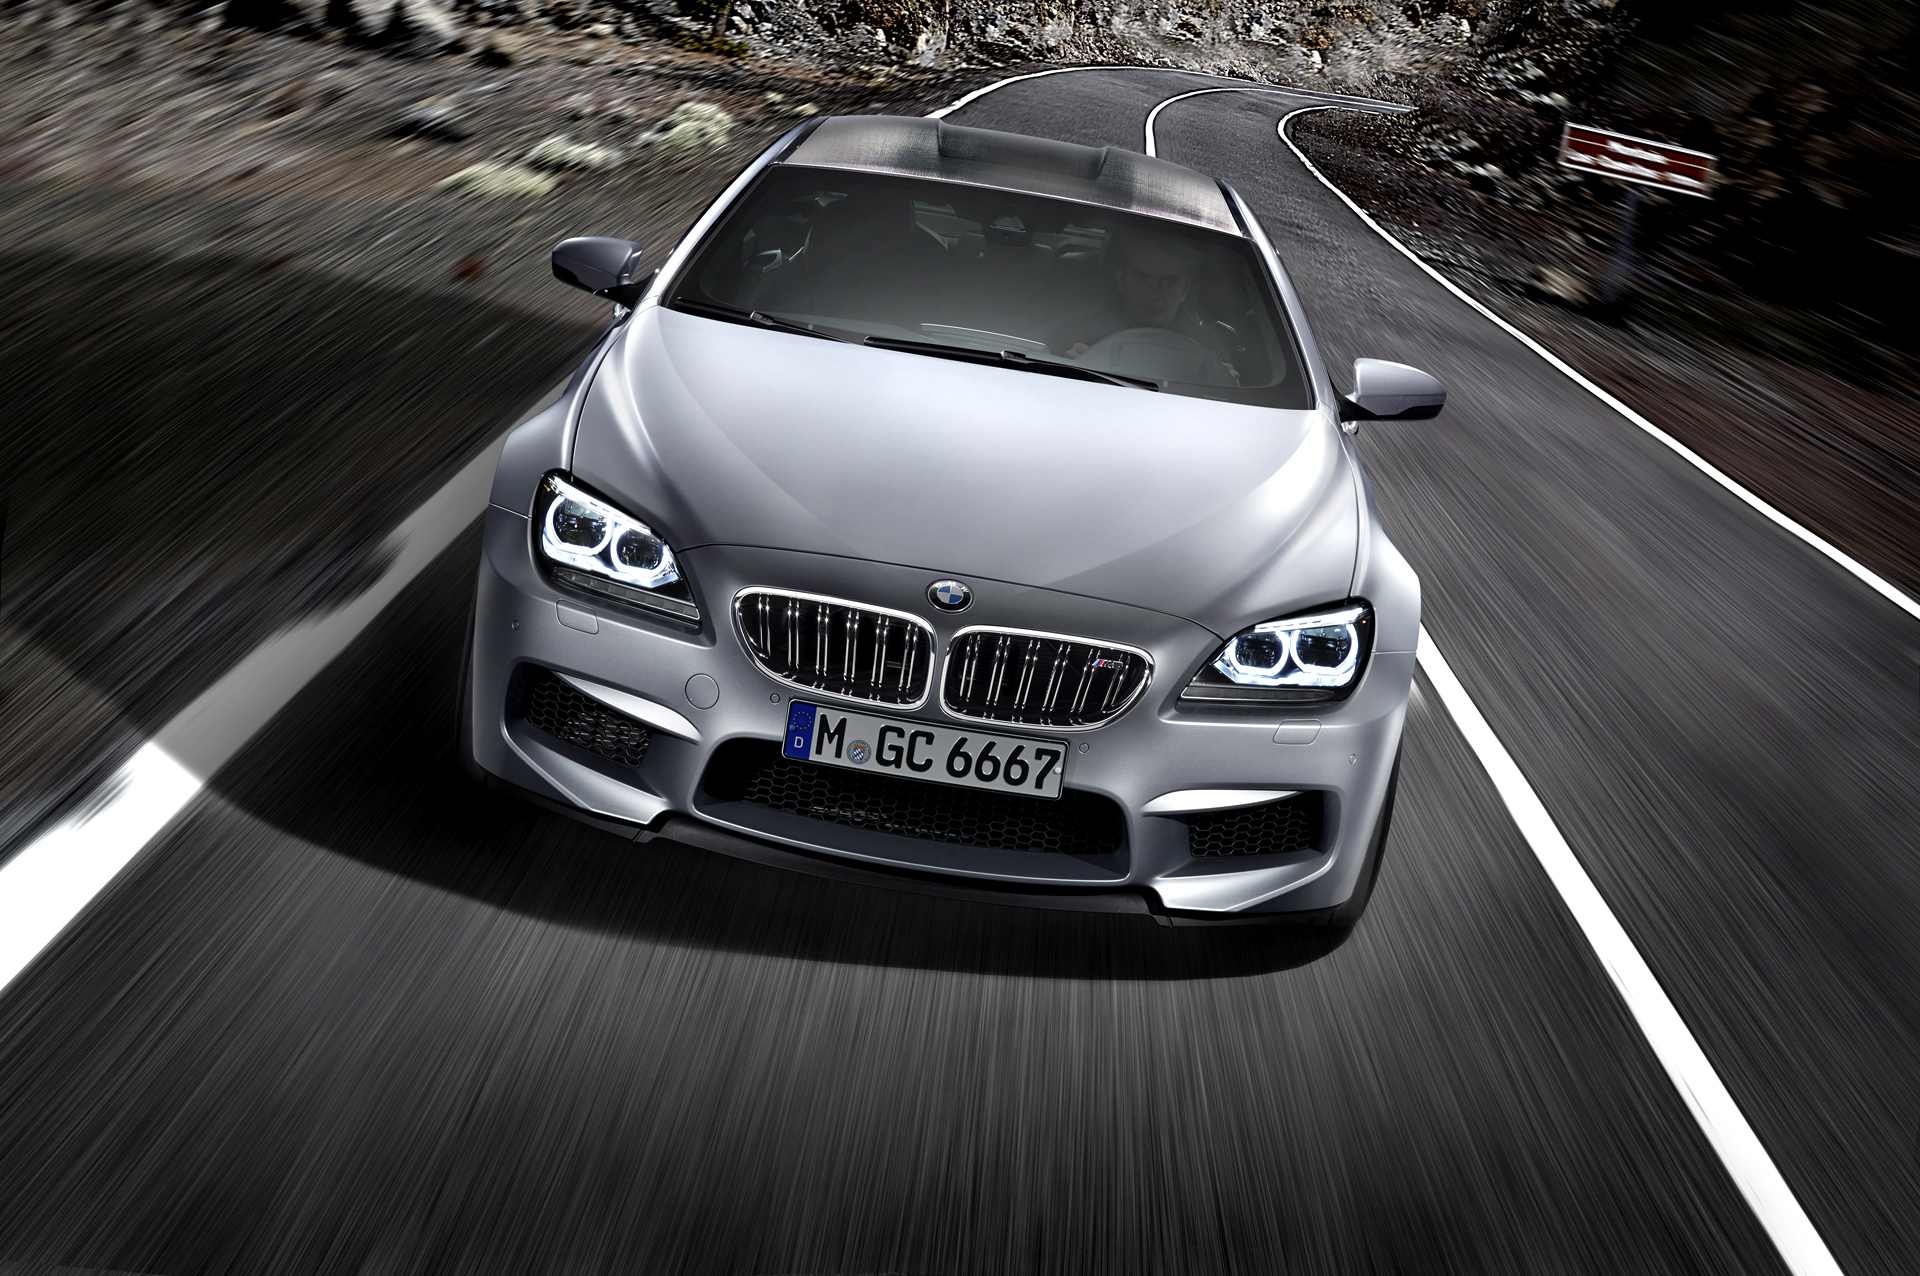 New Wallpapers Bmw M6 Gran Coupe